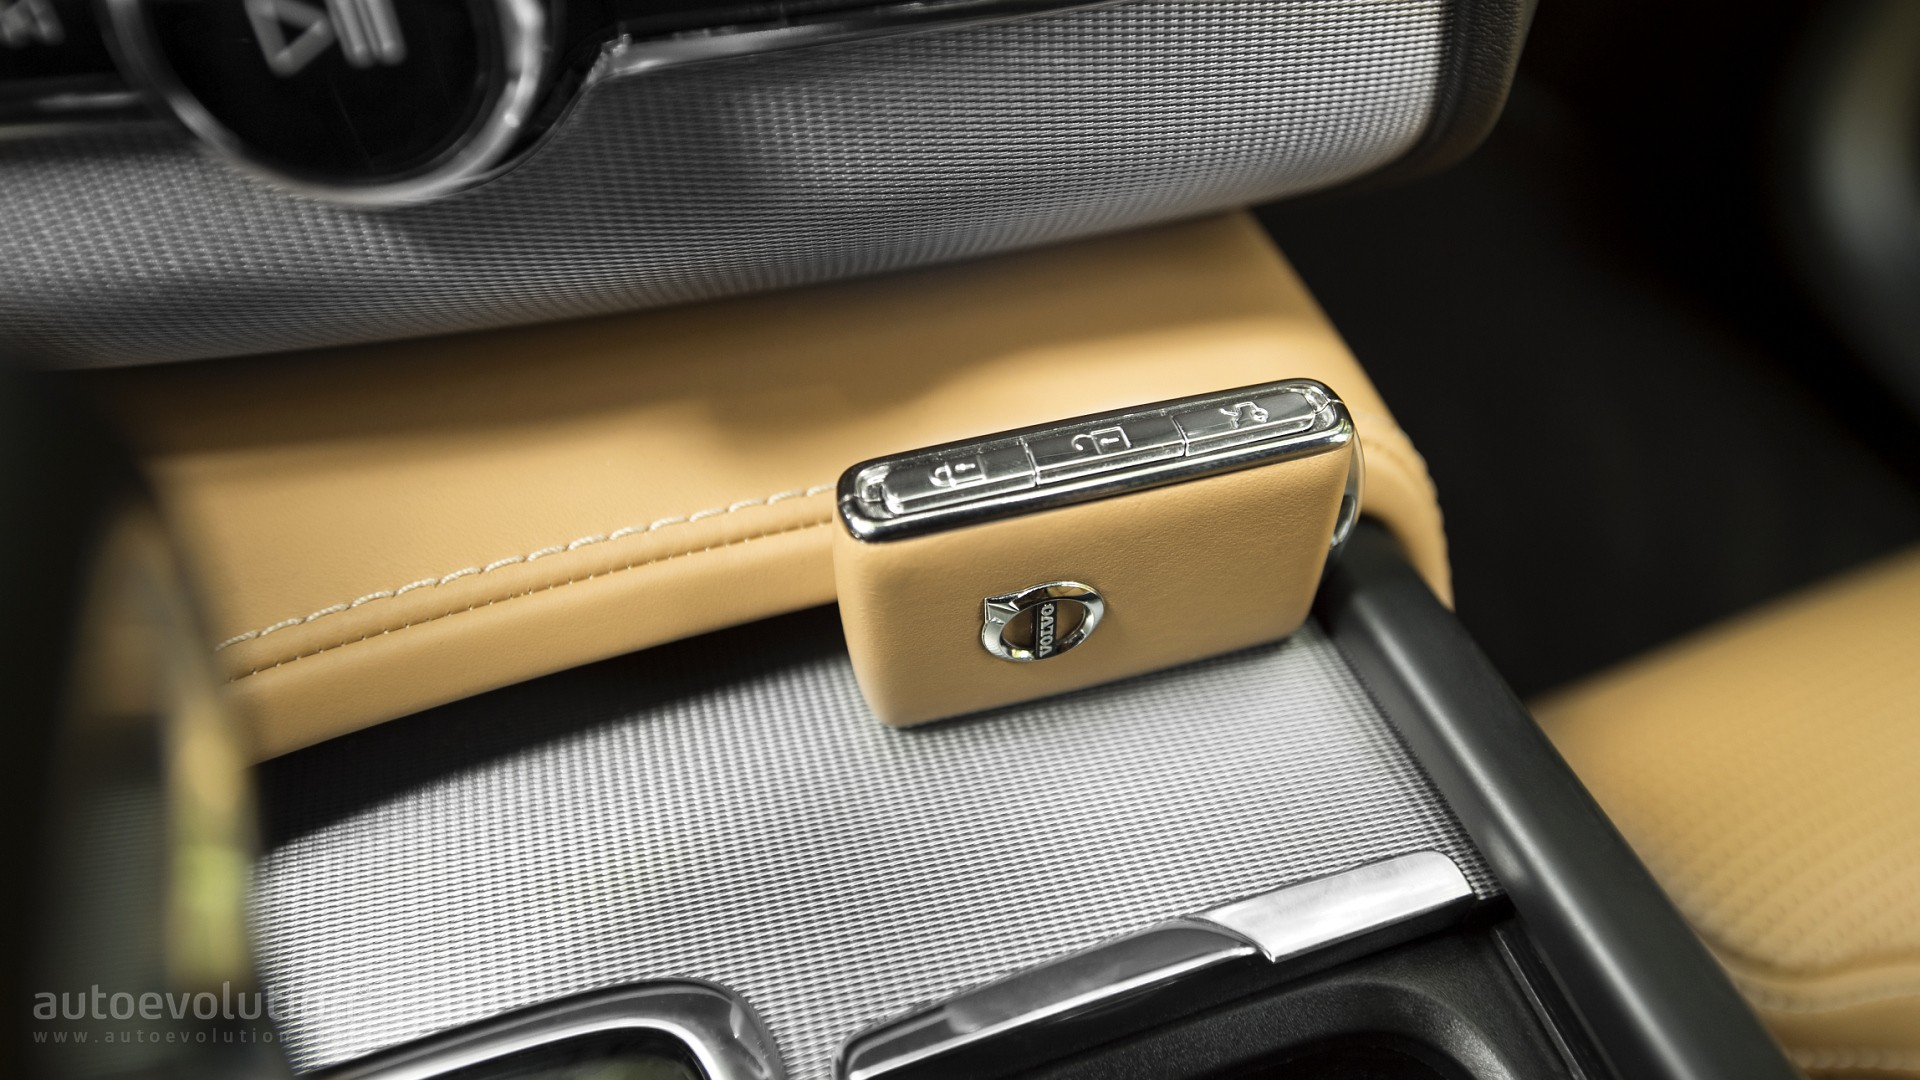 Gm Key Fob >> Volvo XC90 Wins MotorTrend SUV of the Year Award - Page 2